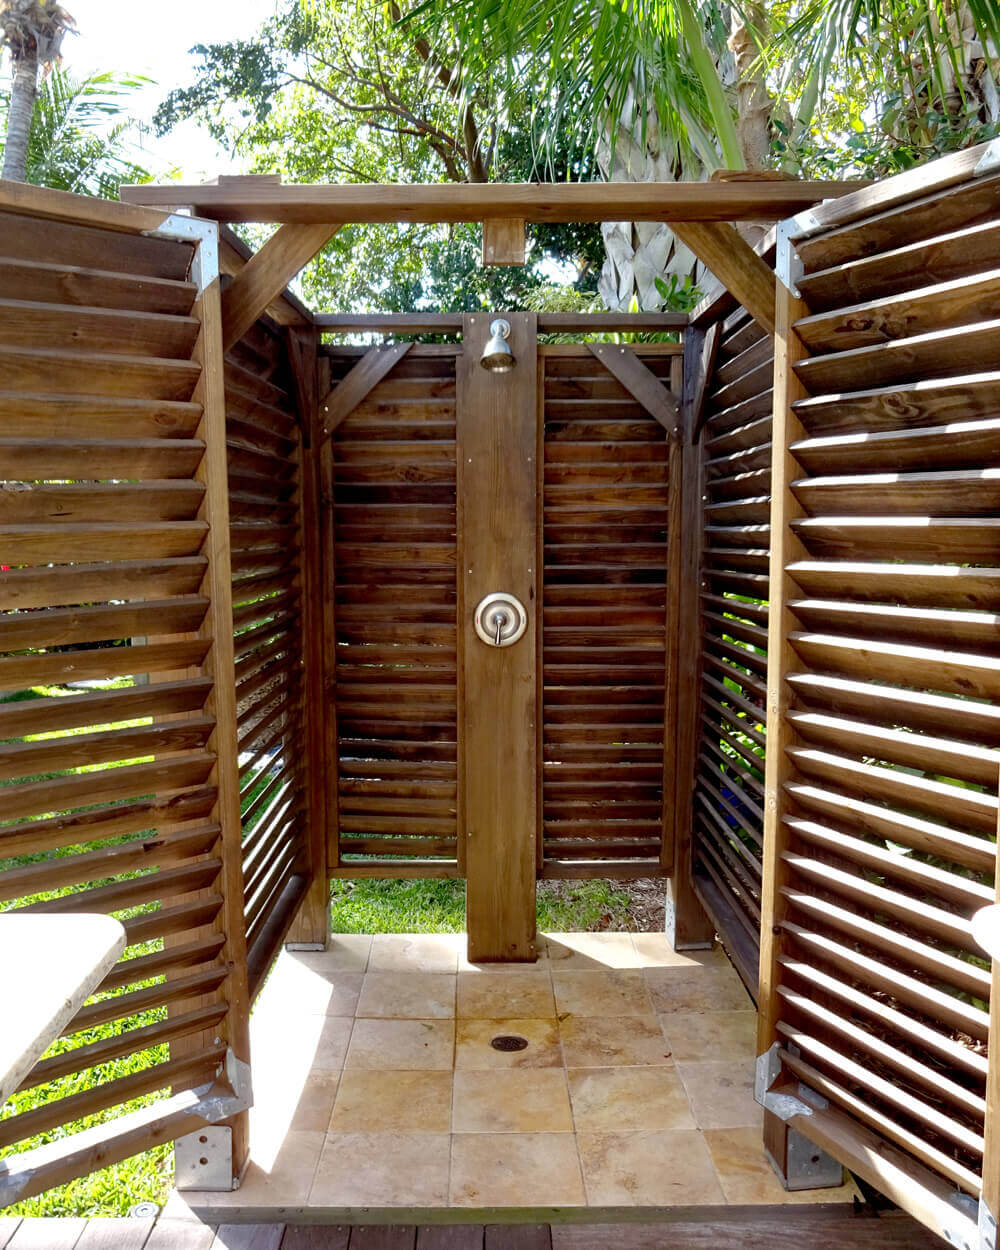 inside of an outdoor shower with slats